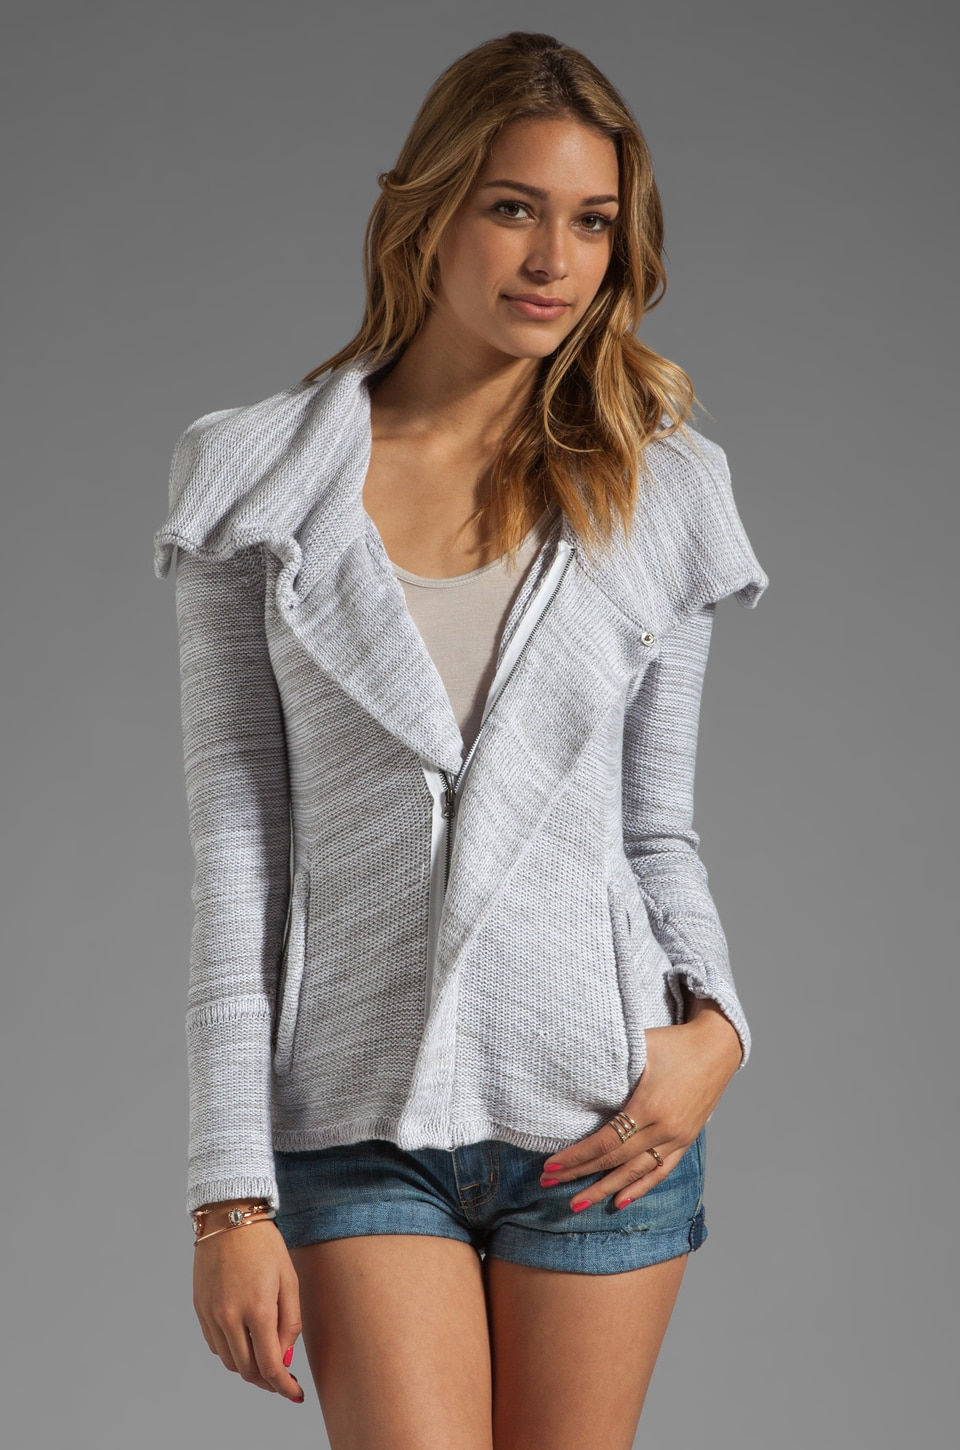 Central Park West Chesapeake Biker Jacket in Grey/White